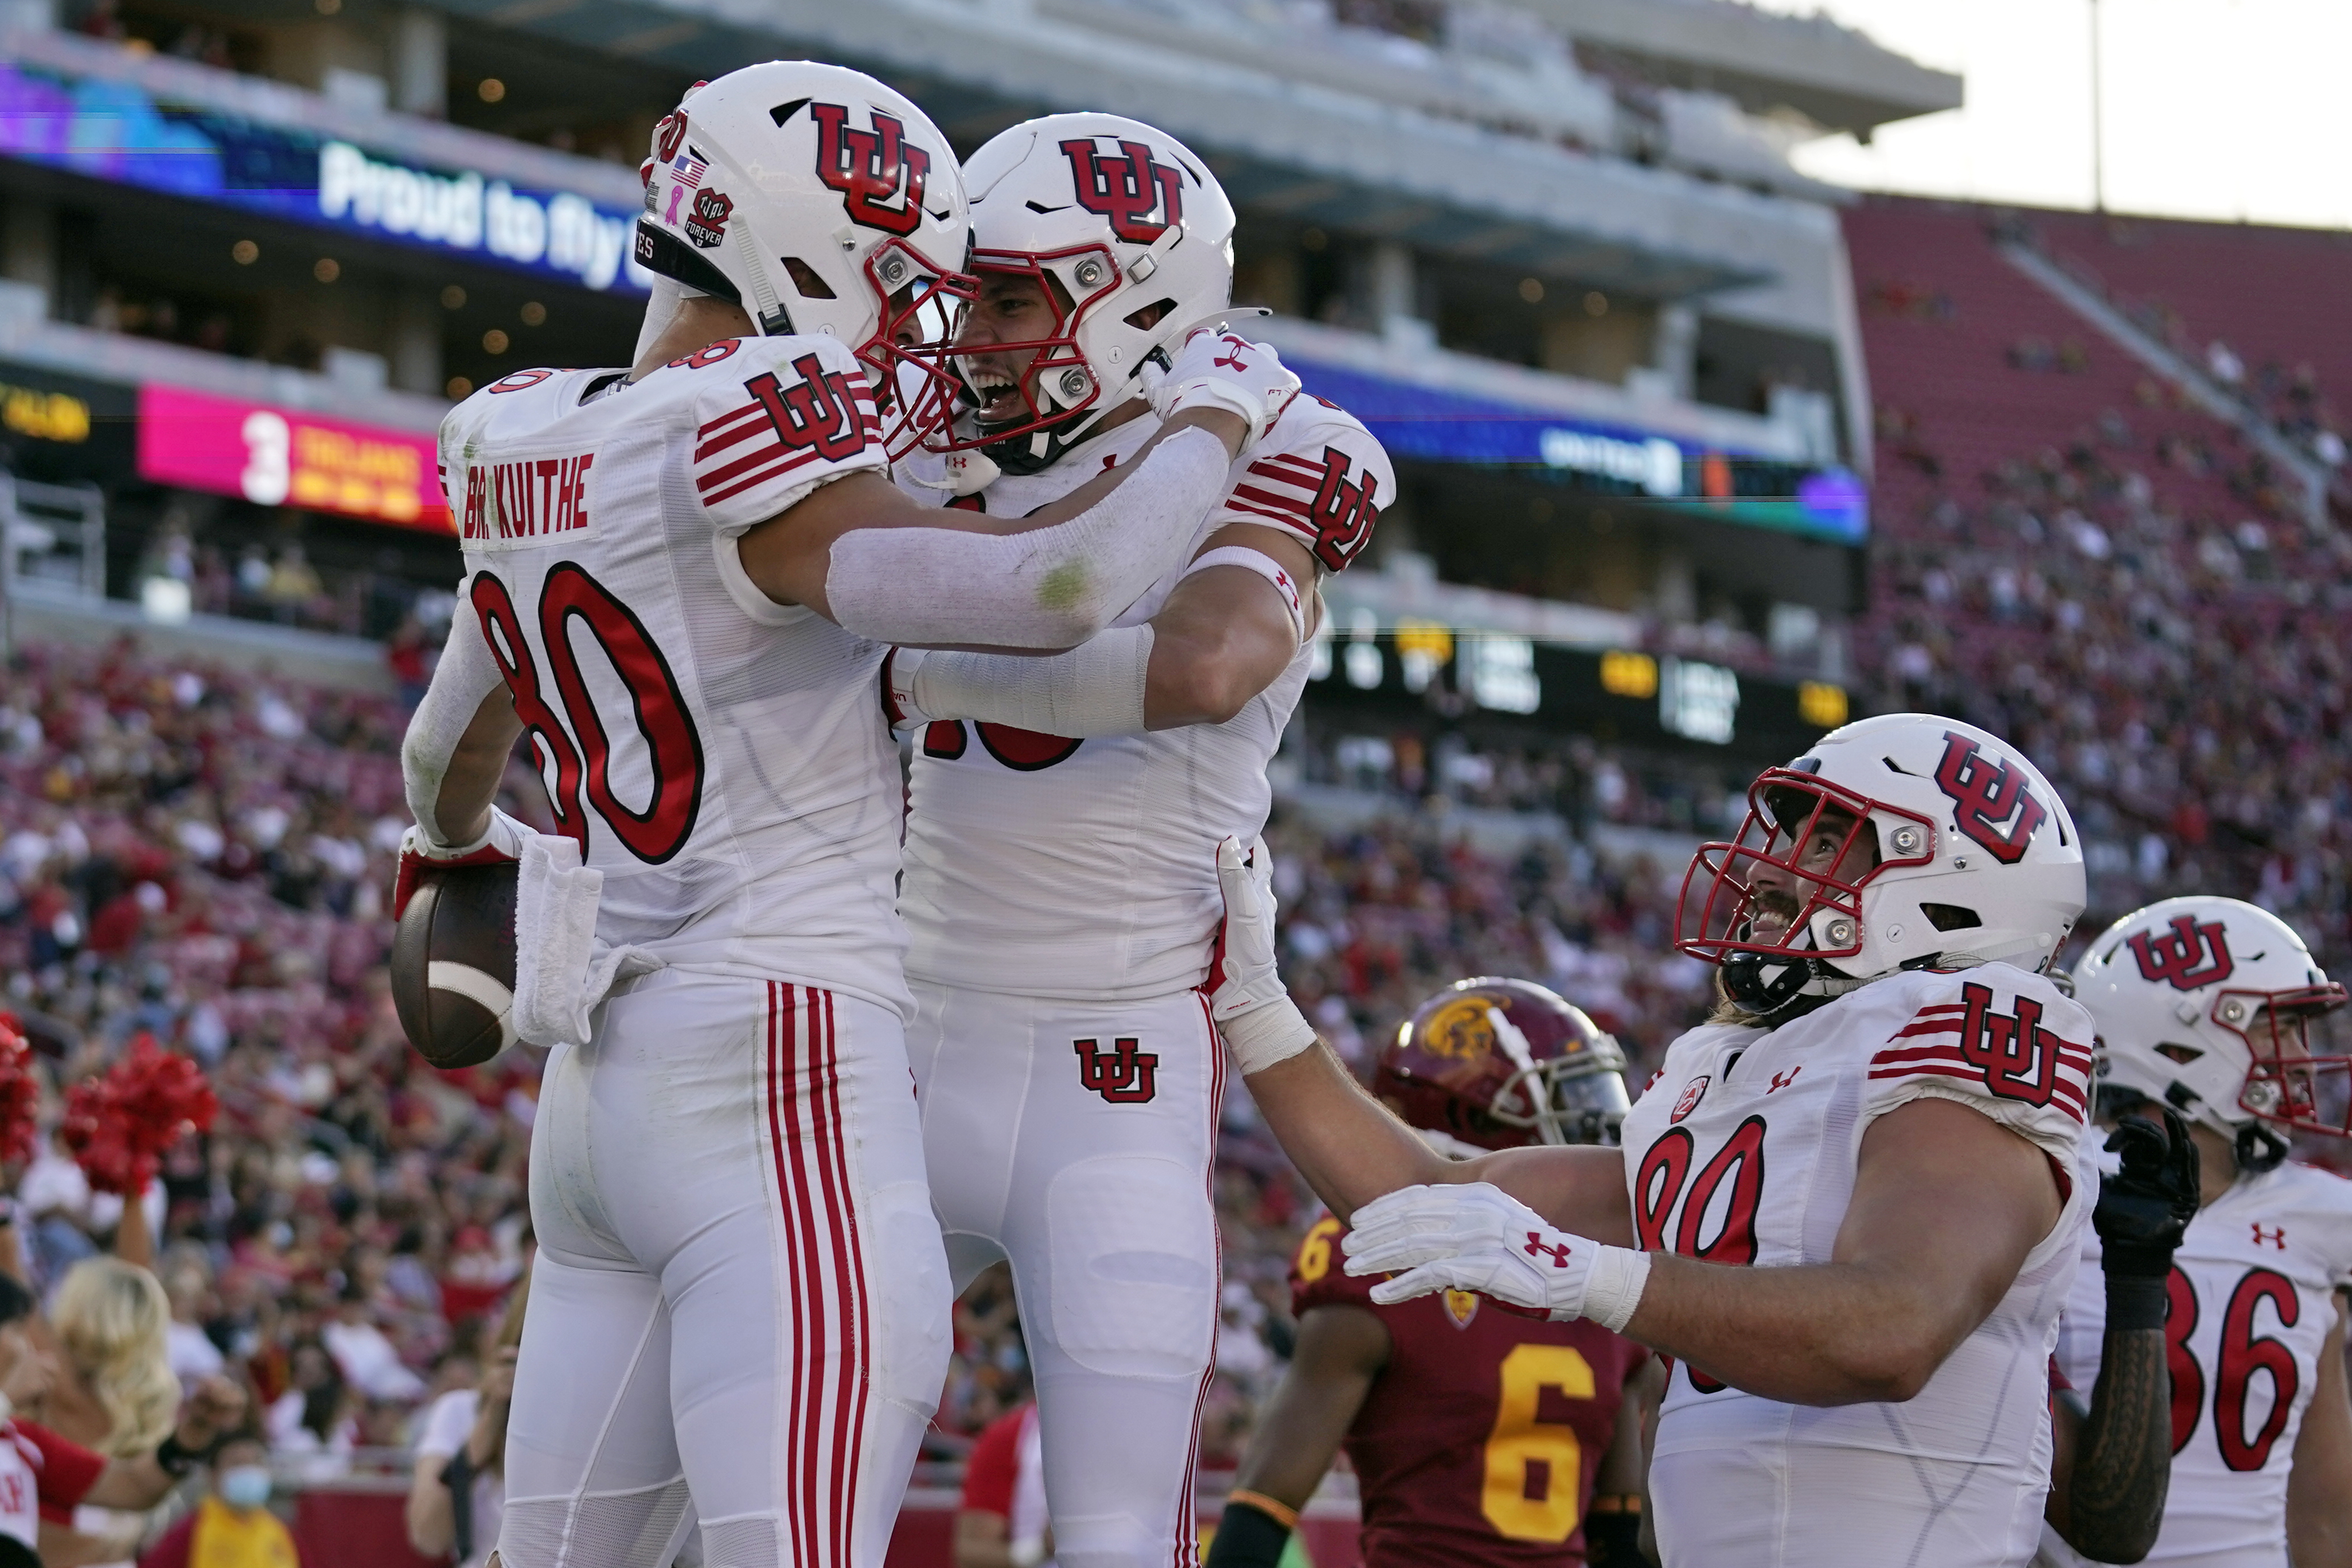 Utah tight end Brant Kuithe, wearing a white helmet and jersey, celebrates his touchdown with wide receiver Britain Covey